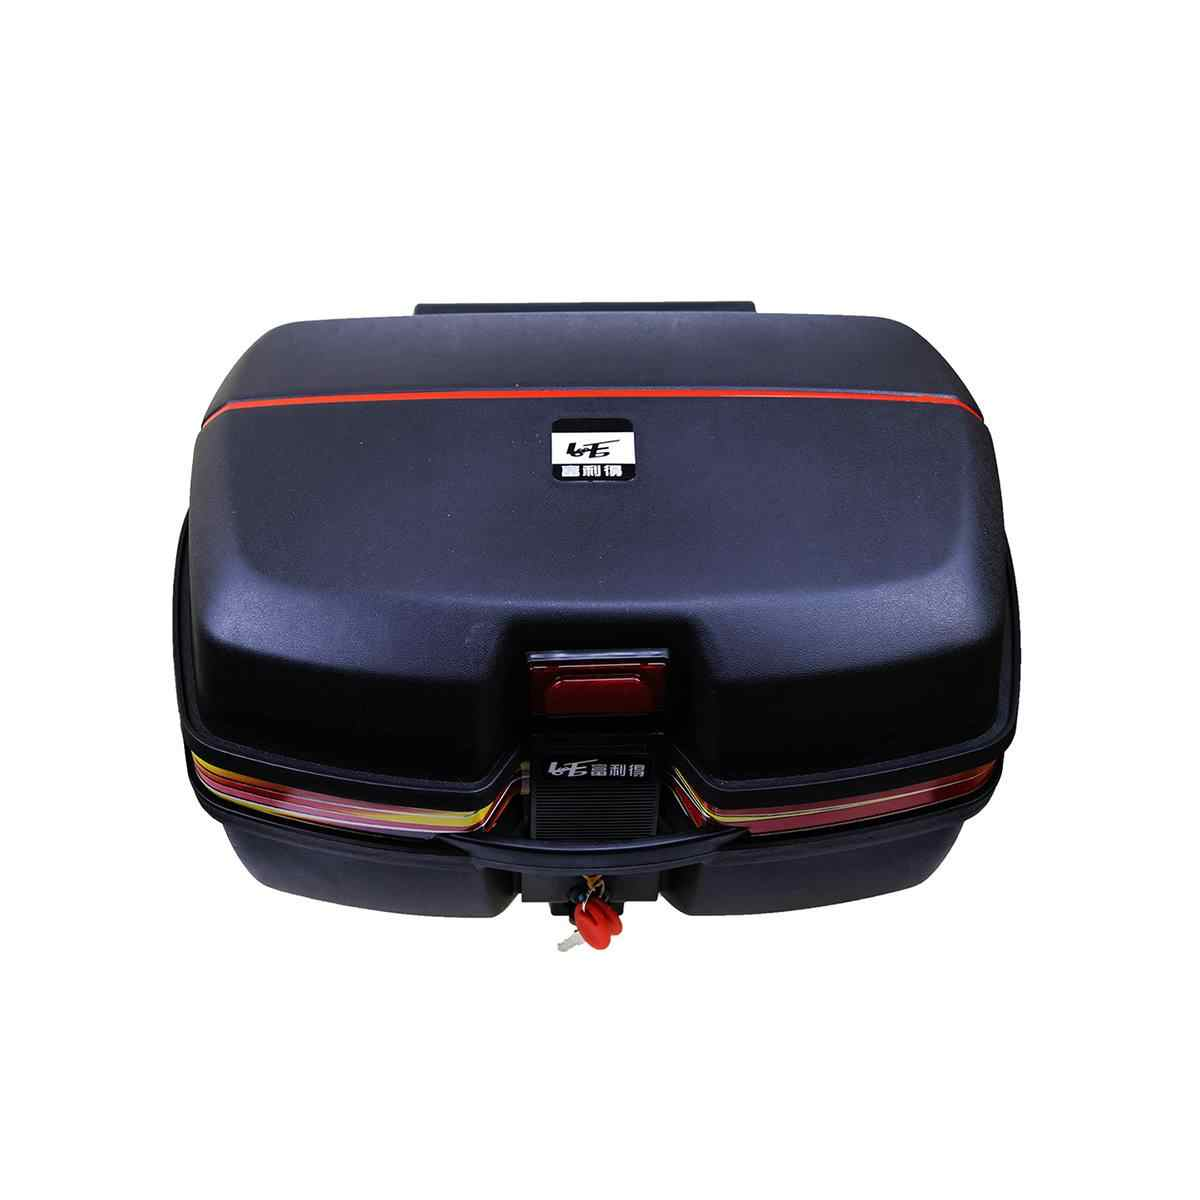 Universal Motorcycle Top Box Motorbike Trunk Helmet Storage Box and Fittings with Night Warning Light Strong Durable Luggage Storage Back Case 413527cm